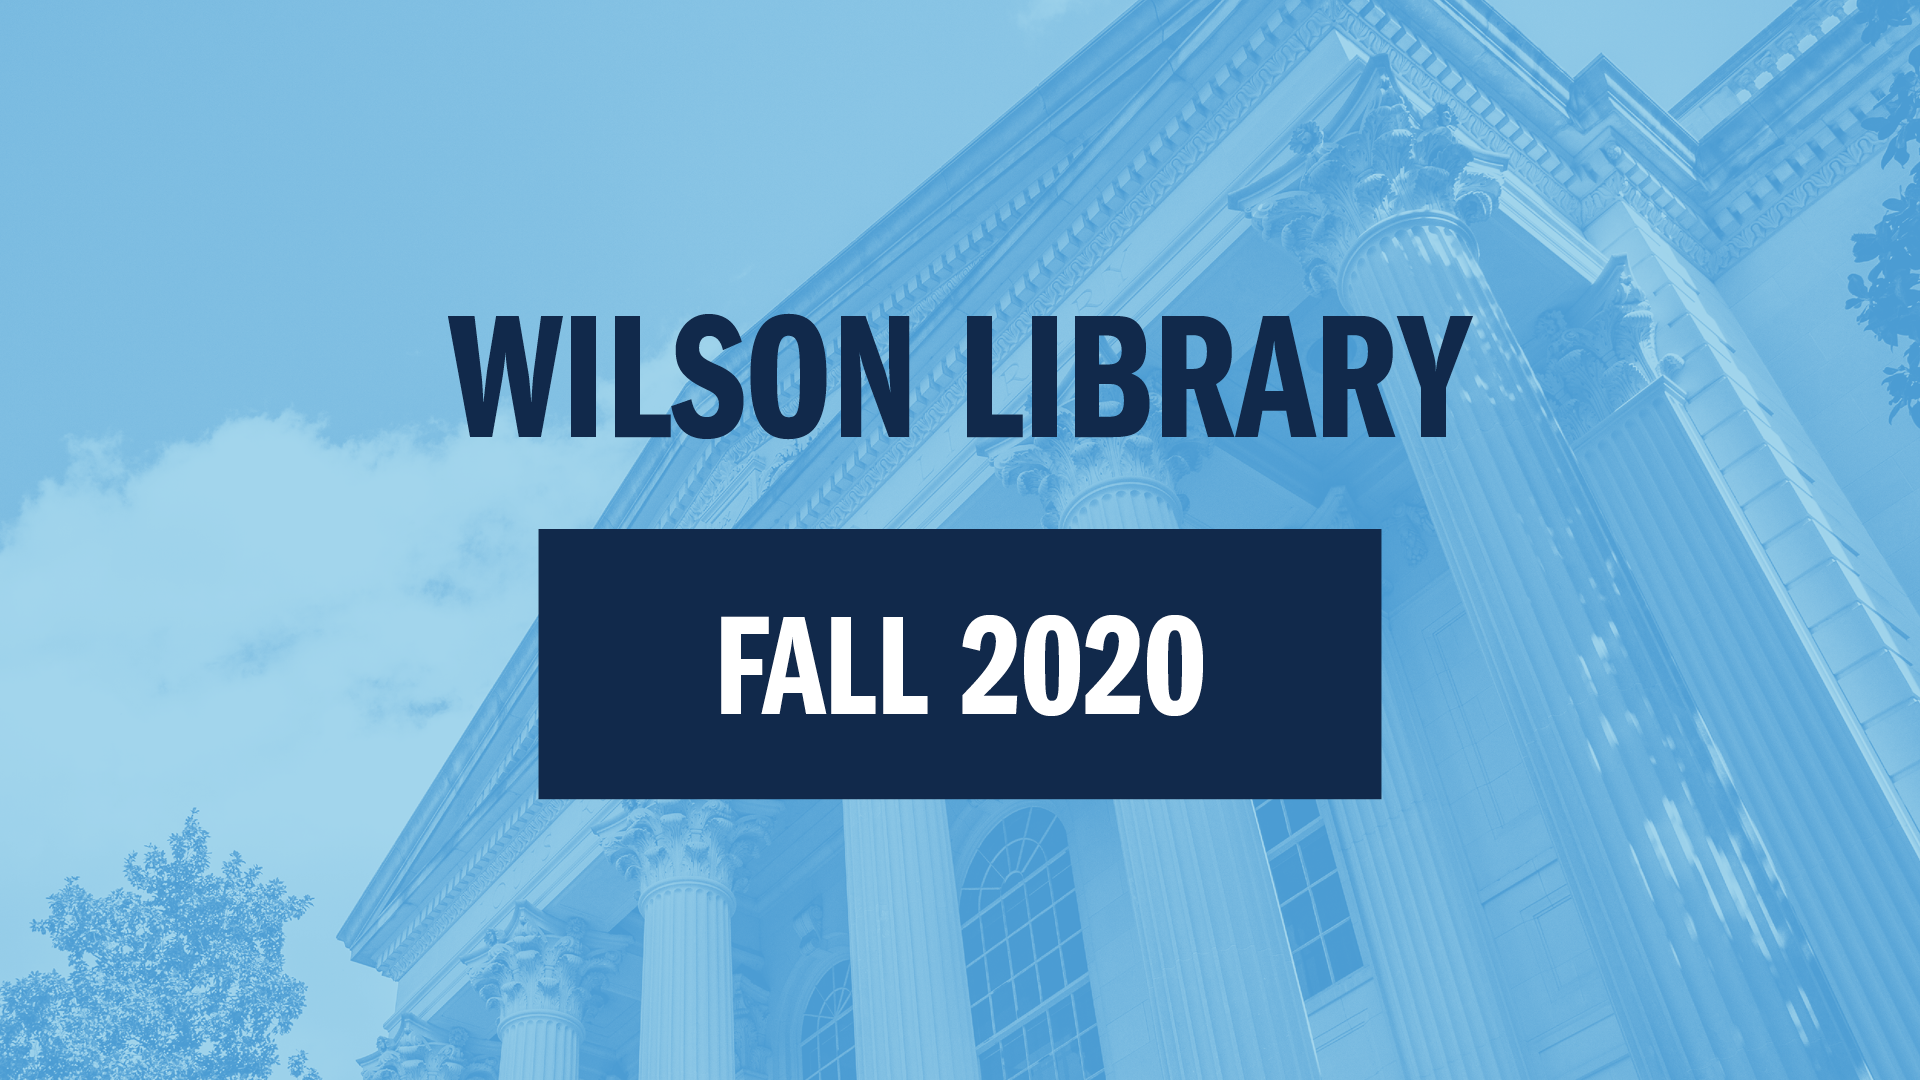 Access Special Collections in Fall 2020